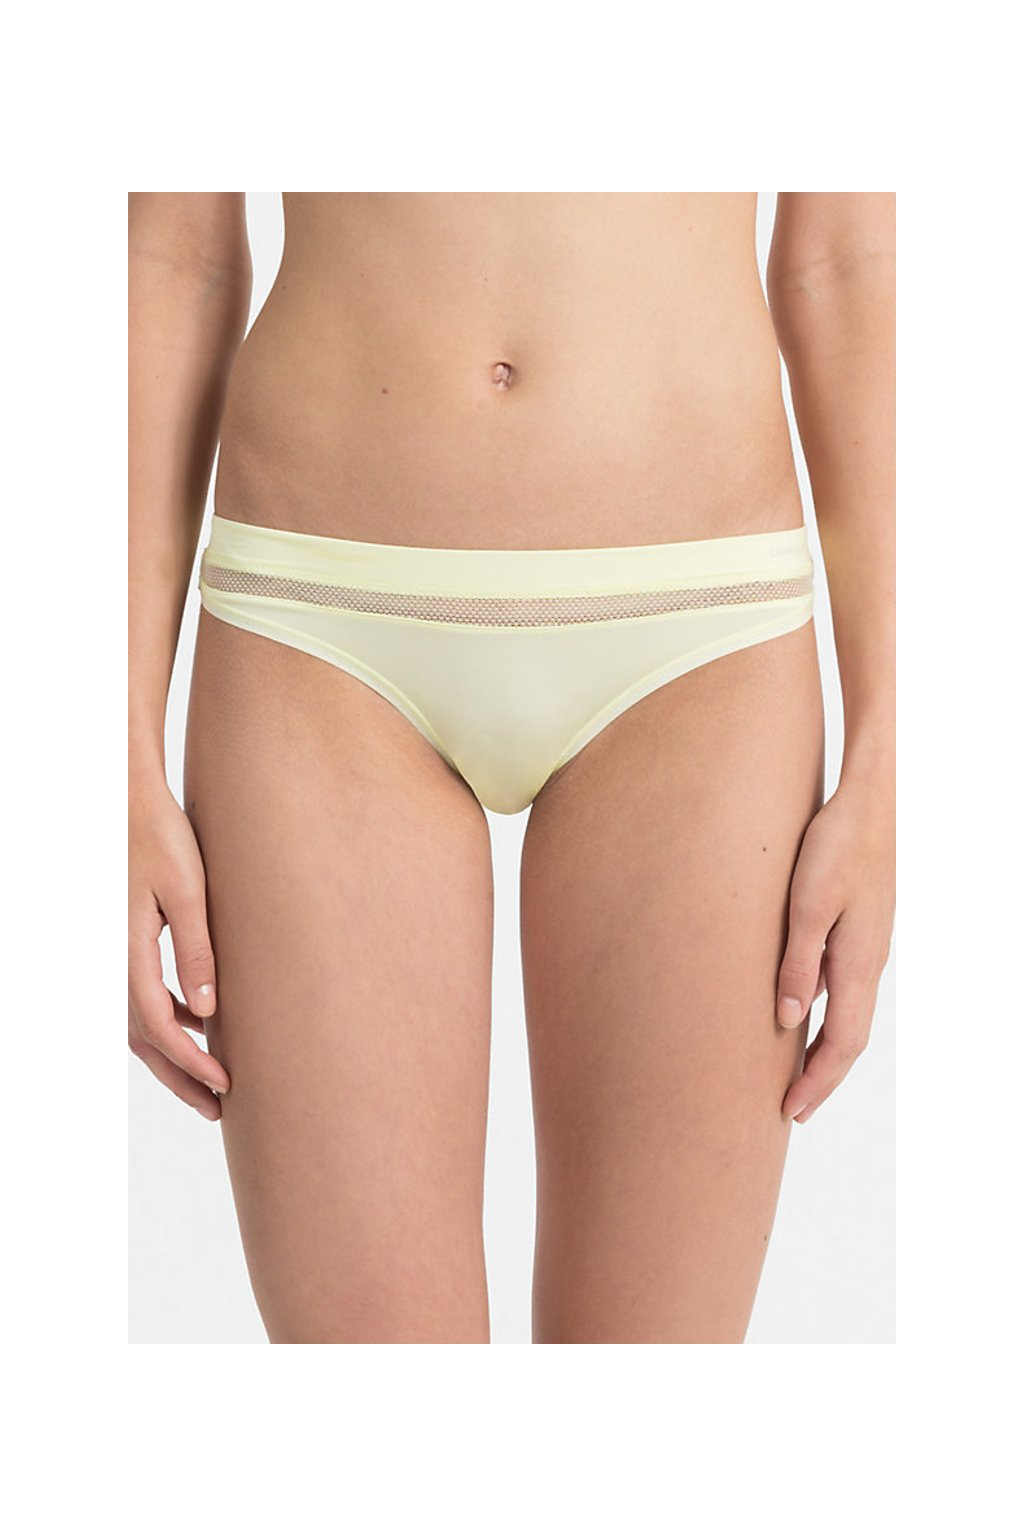 LIMITKA! Calvin Klein Youthful tanga - agnes yellow